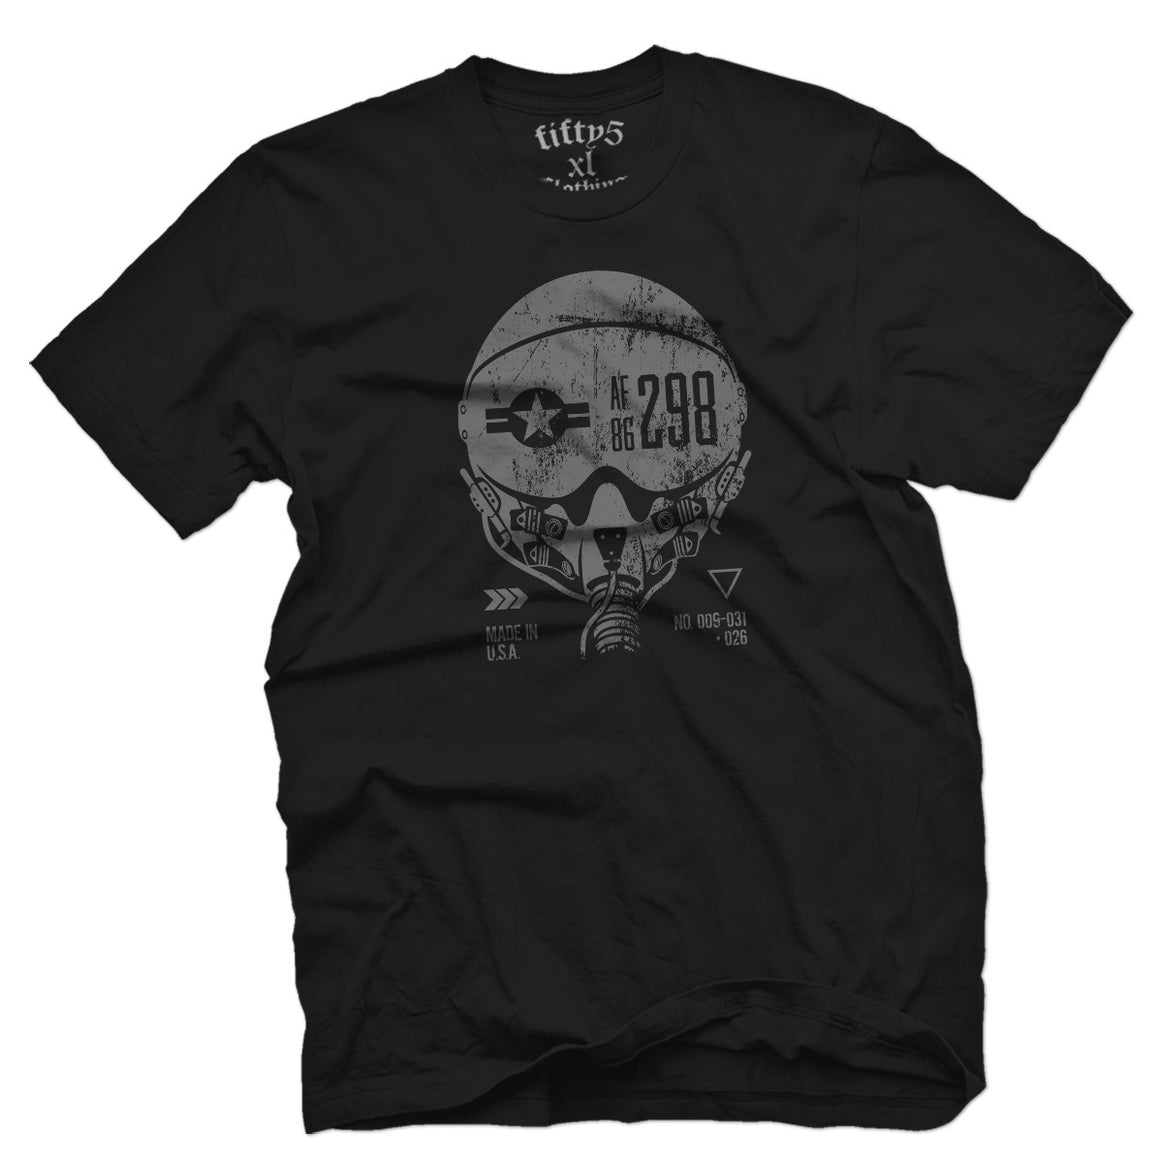 Fifty5 Clothing Fighter Pilot Men's T Shirt